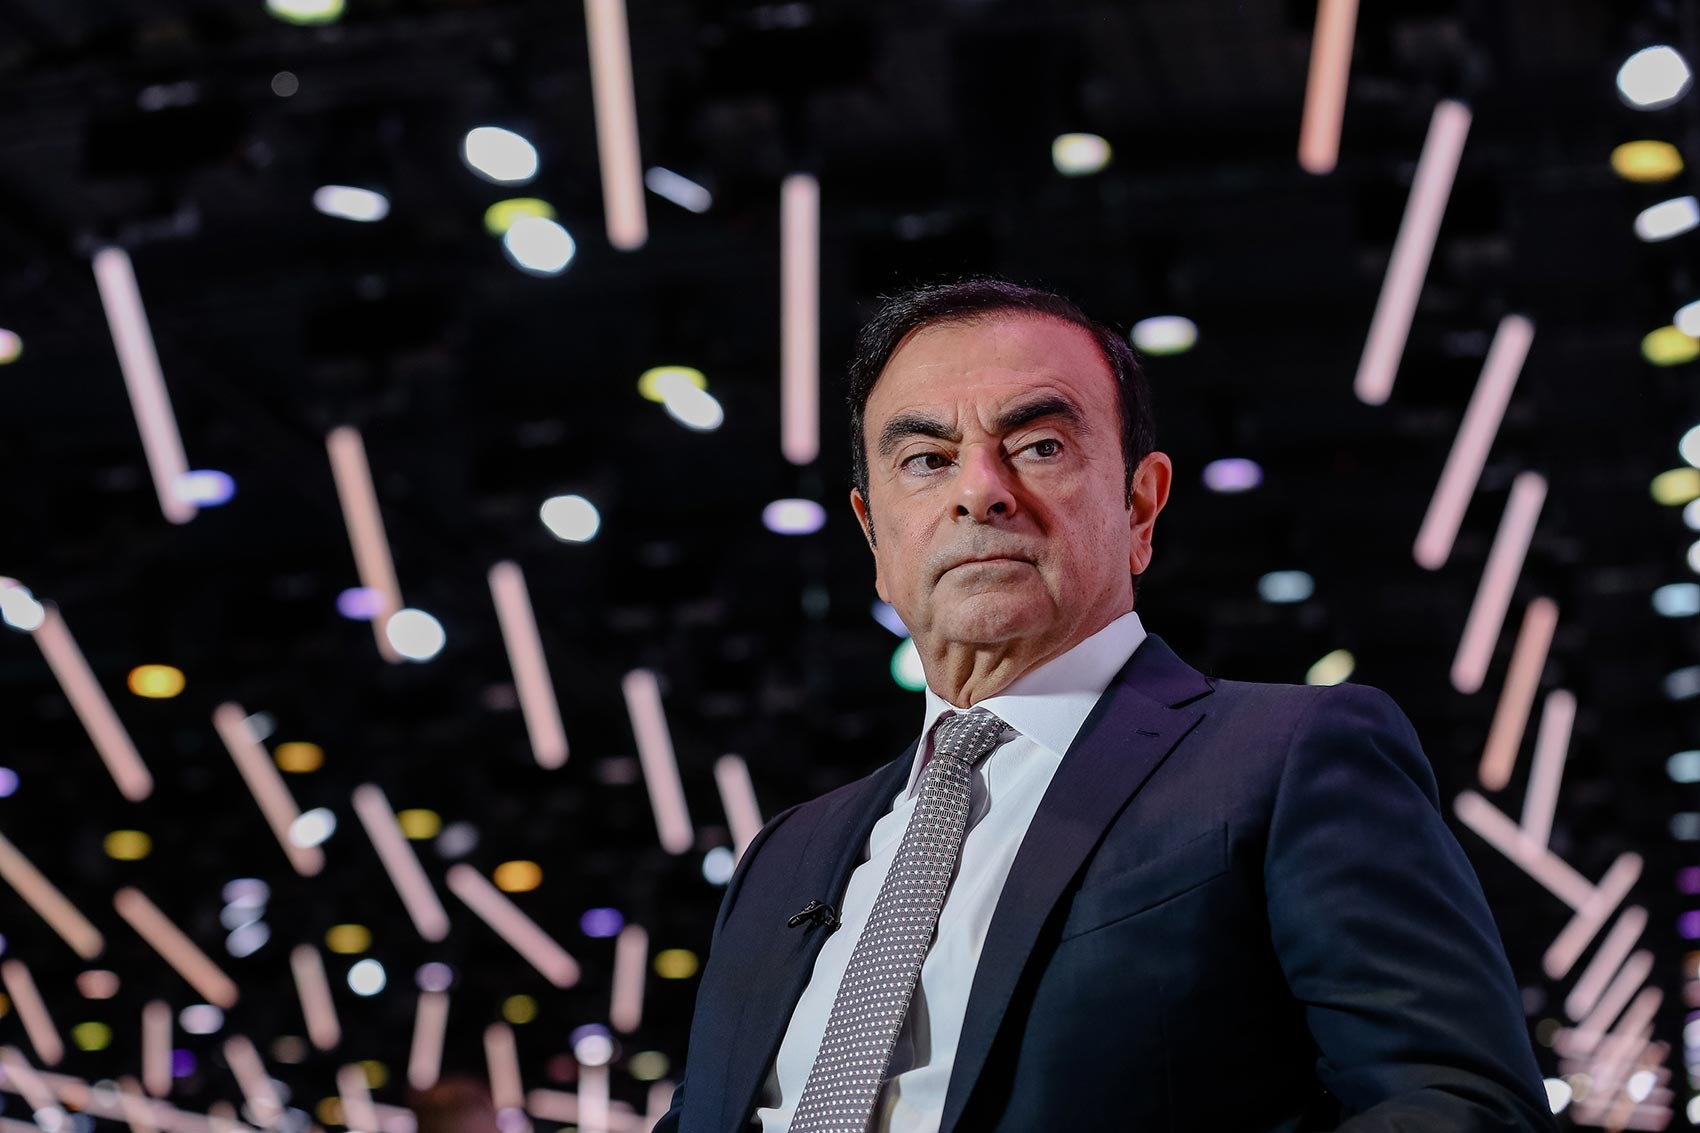 Carlos Ghosn reported for financial misconduct